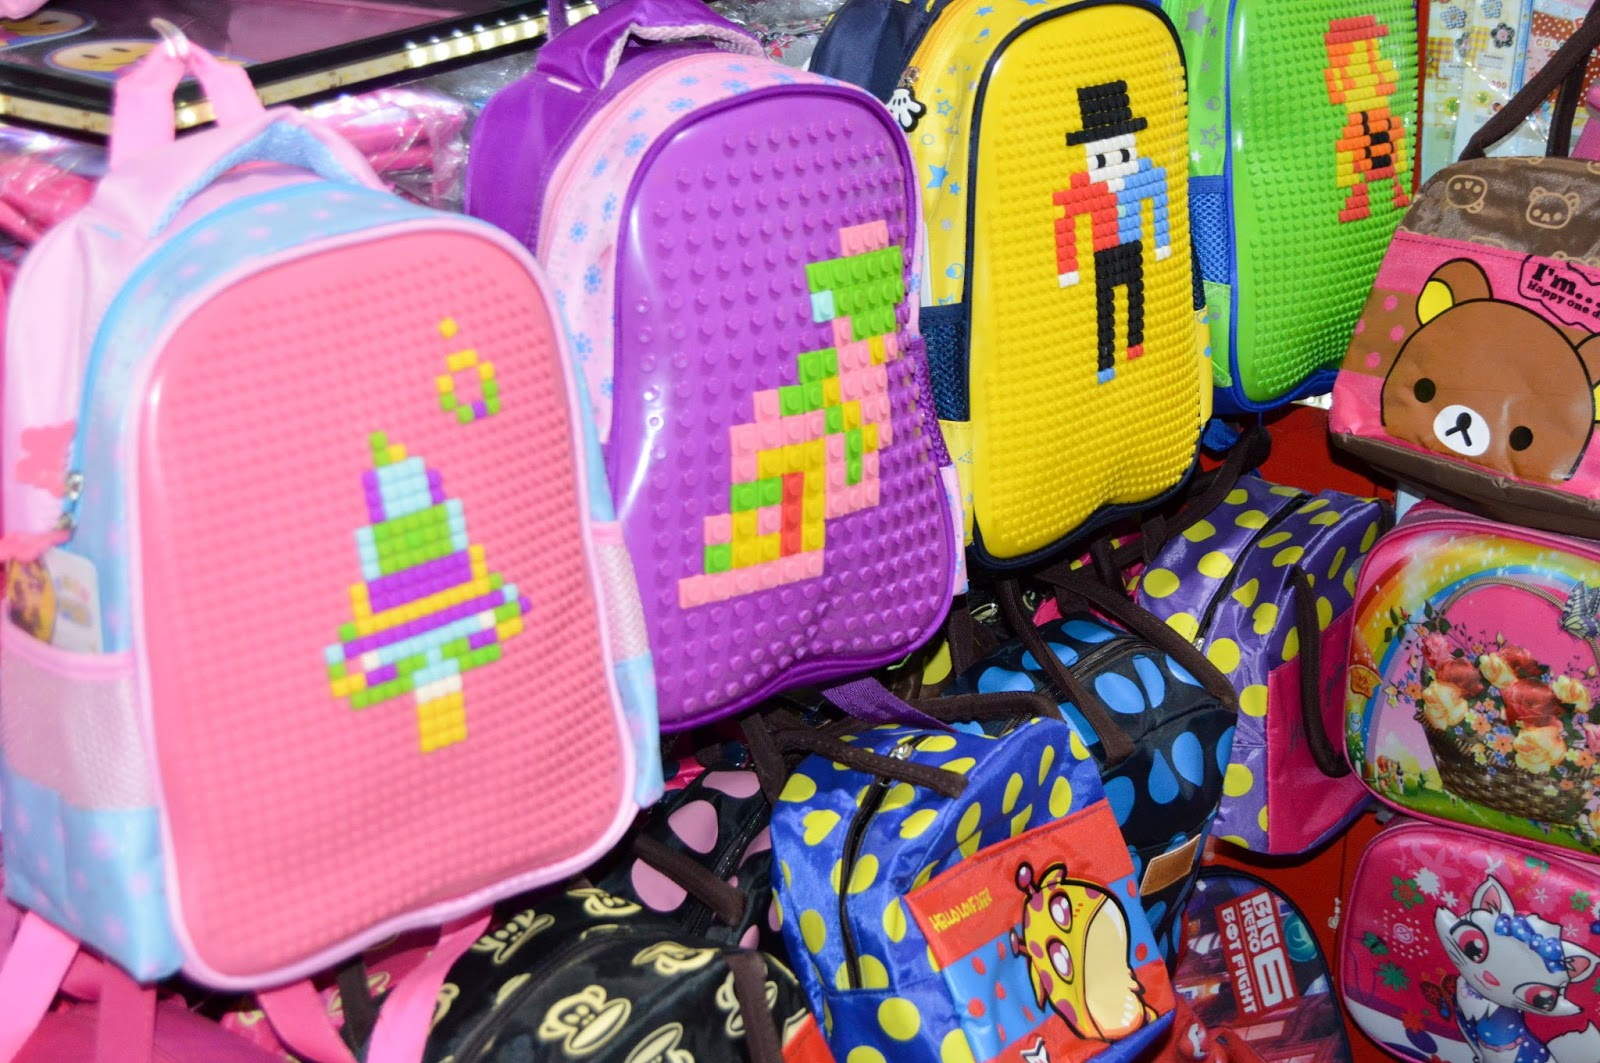 Colorful Baby School Bags - Free Stock Photos - Free Images - Free Wallpapers - Free Photos